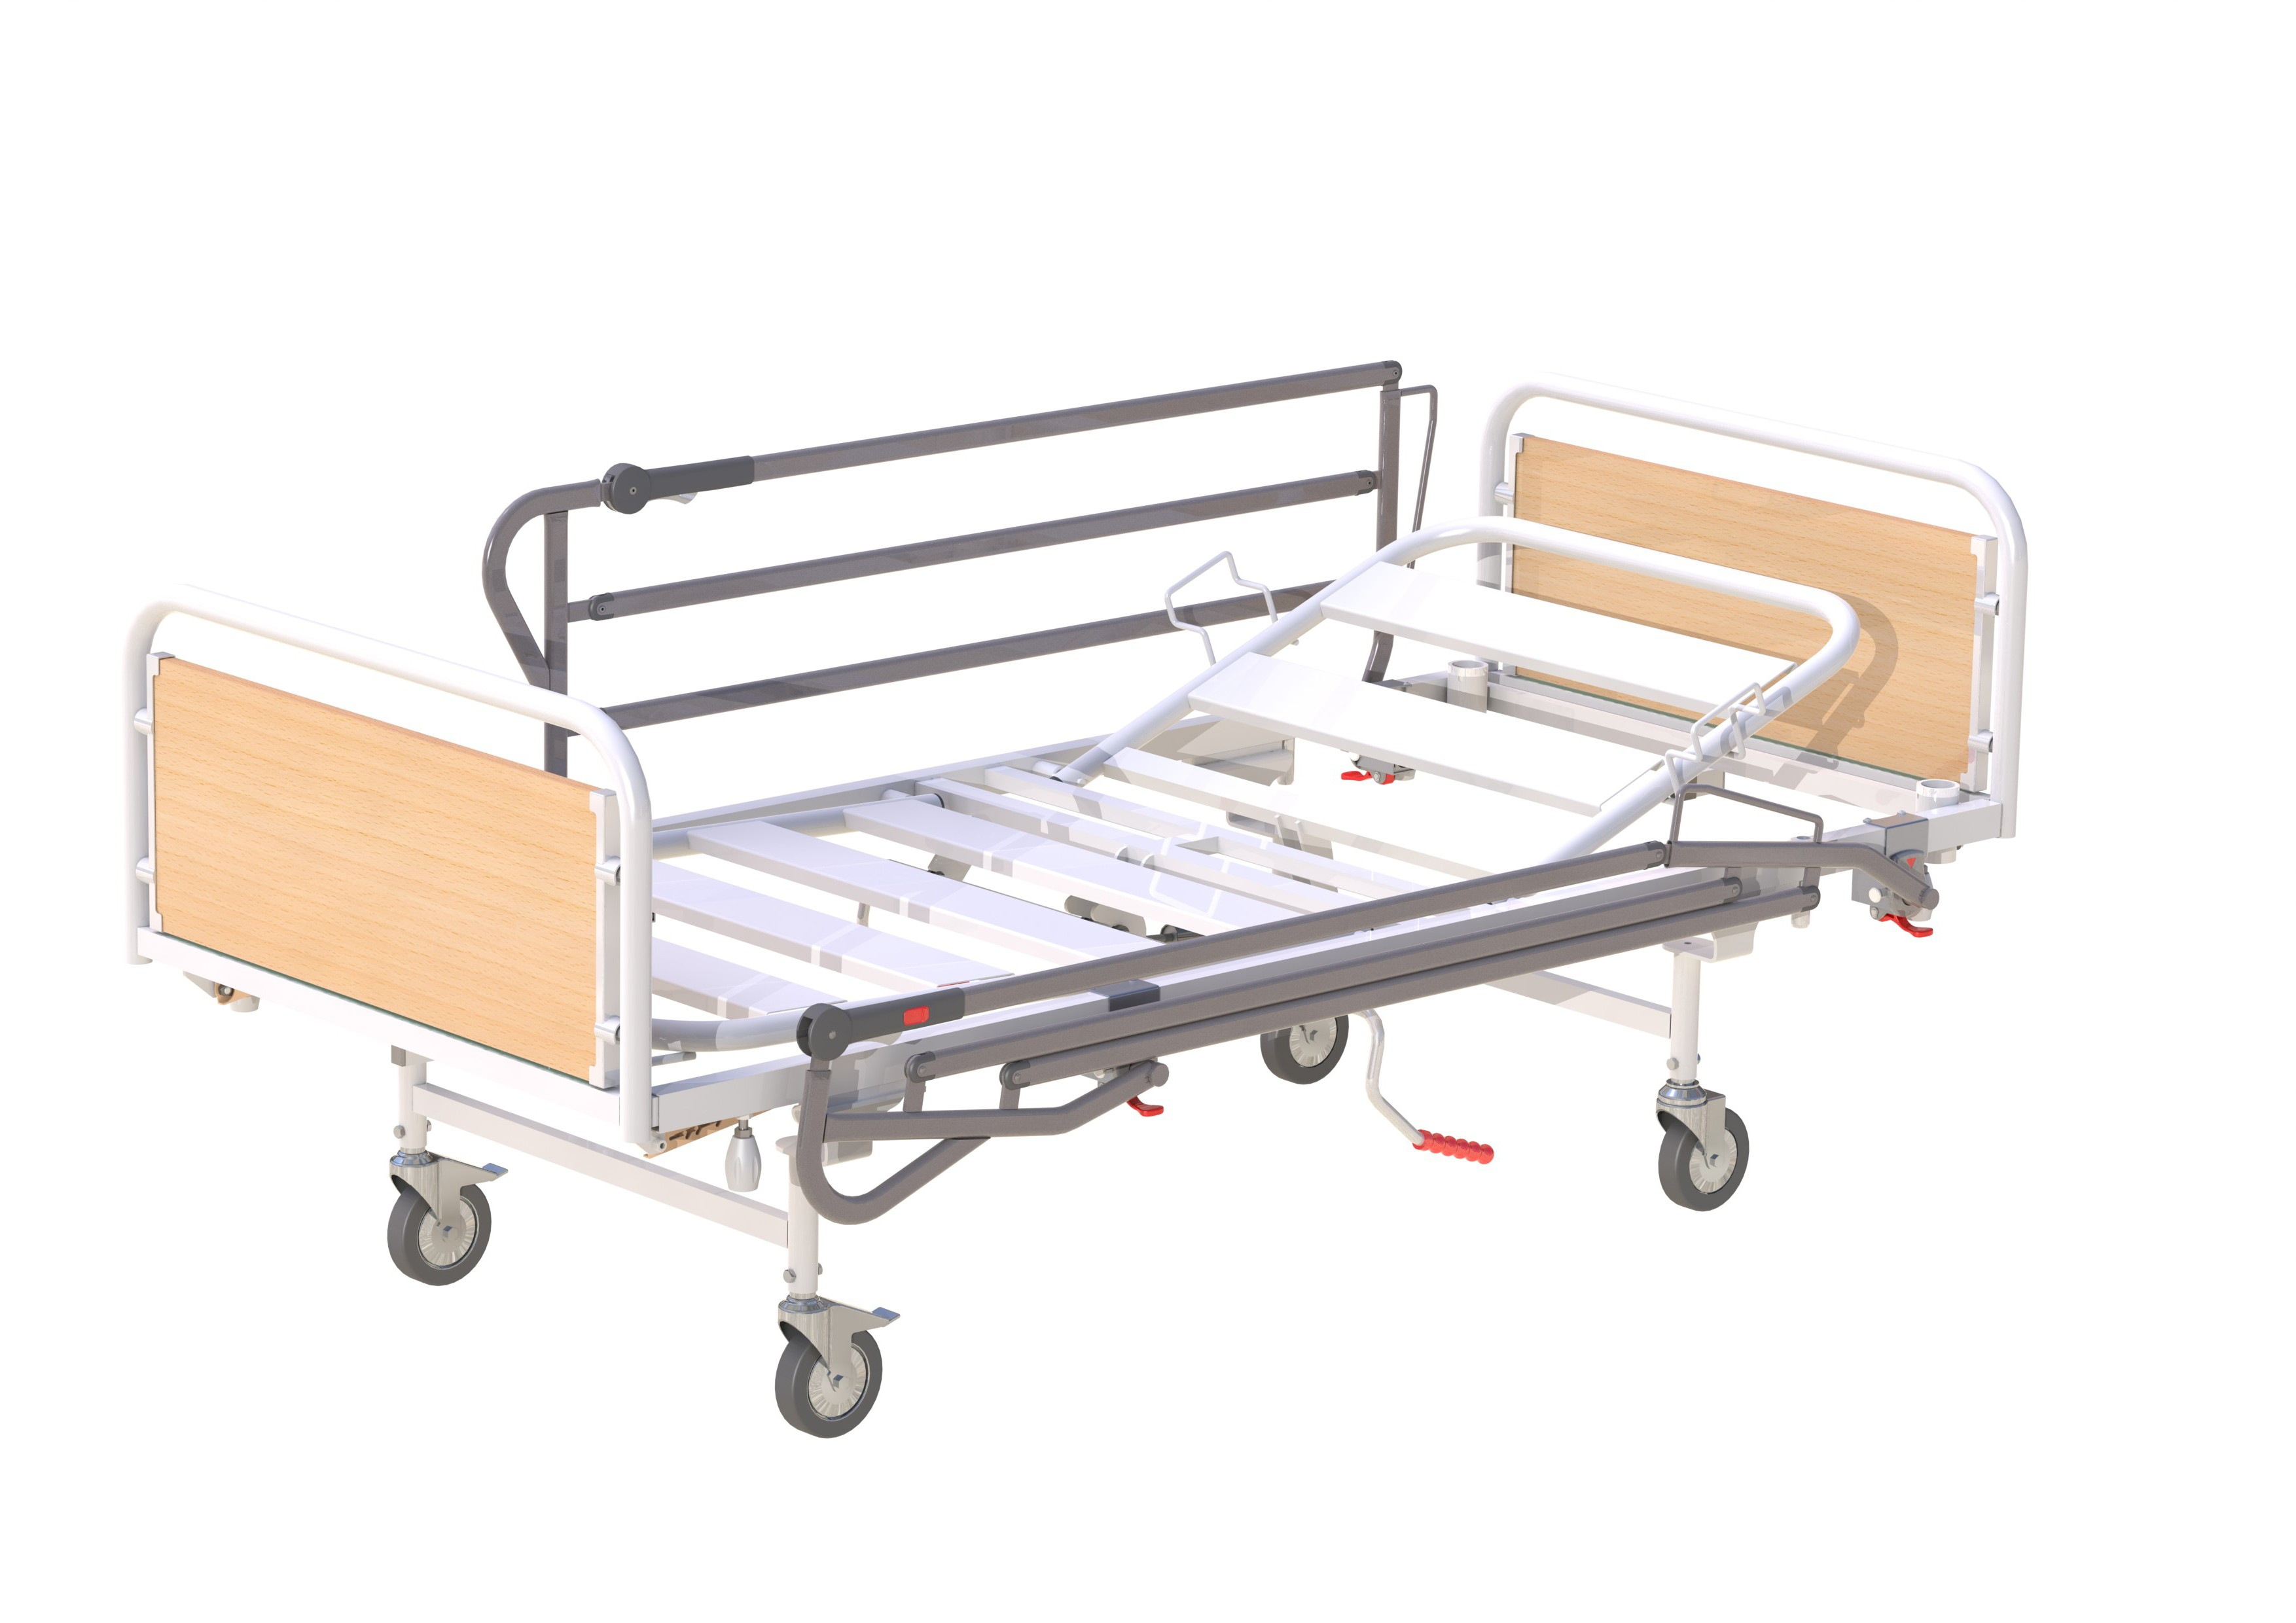 products bathing supplies hq orca bathtub hoist trolley systems assisted shower healthcare